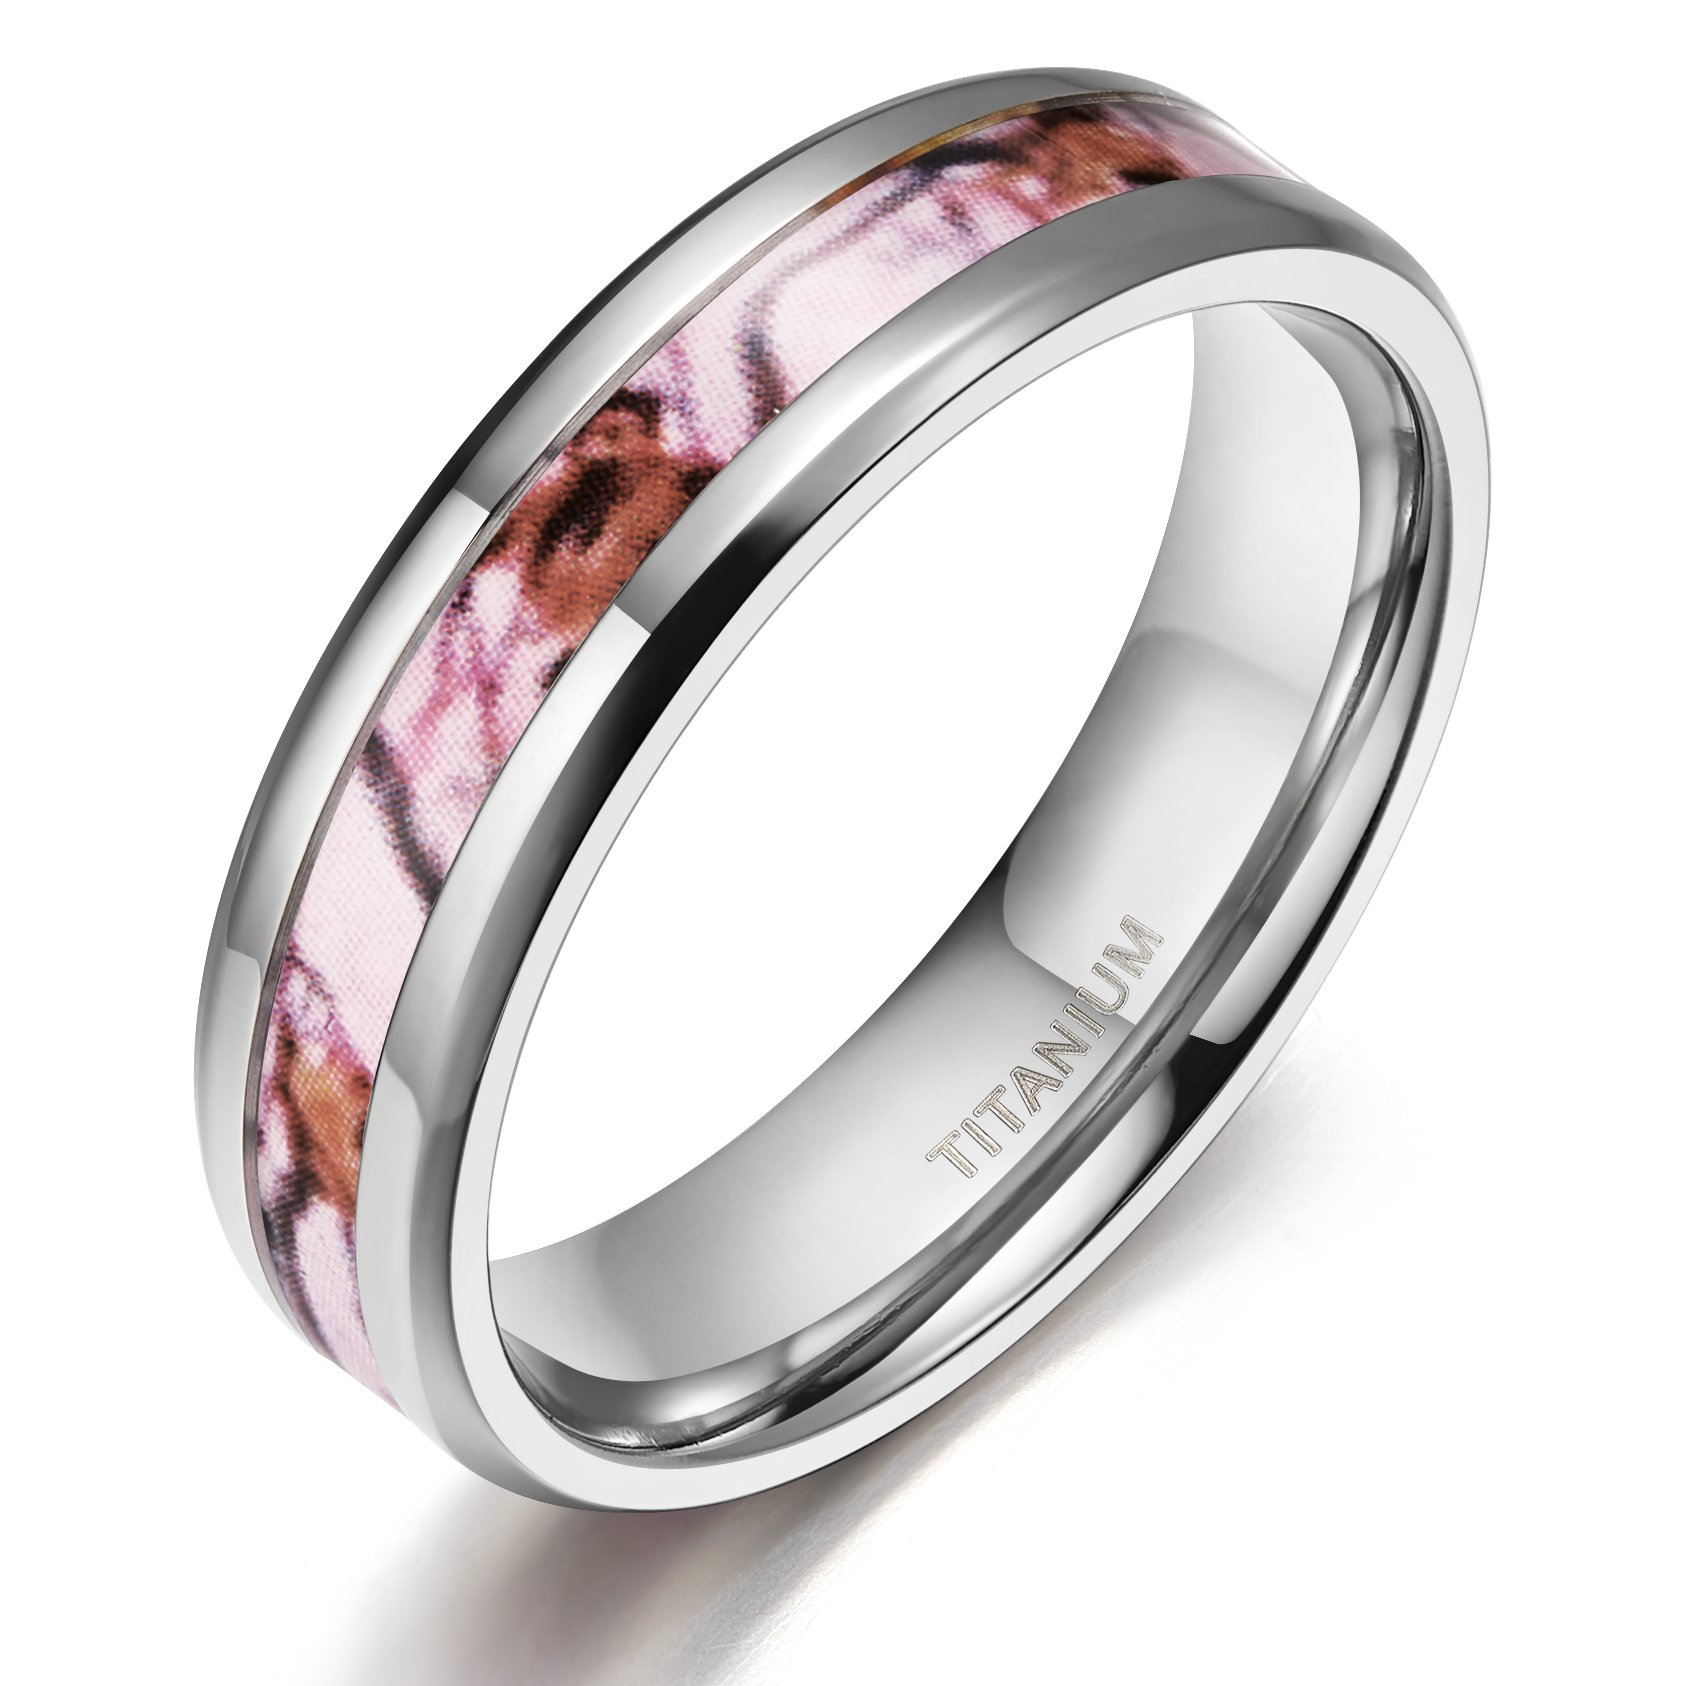 TIGRADE 6 MM Titanium Wedding Rings Band with Deer Antlers Camouflage Inlay in Comfort Fit(7.5)